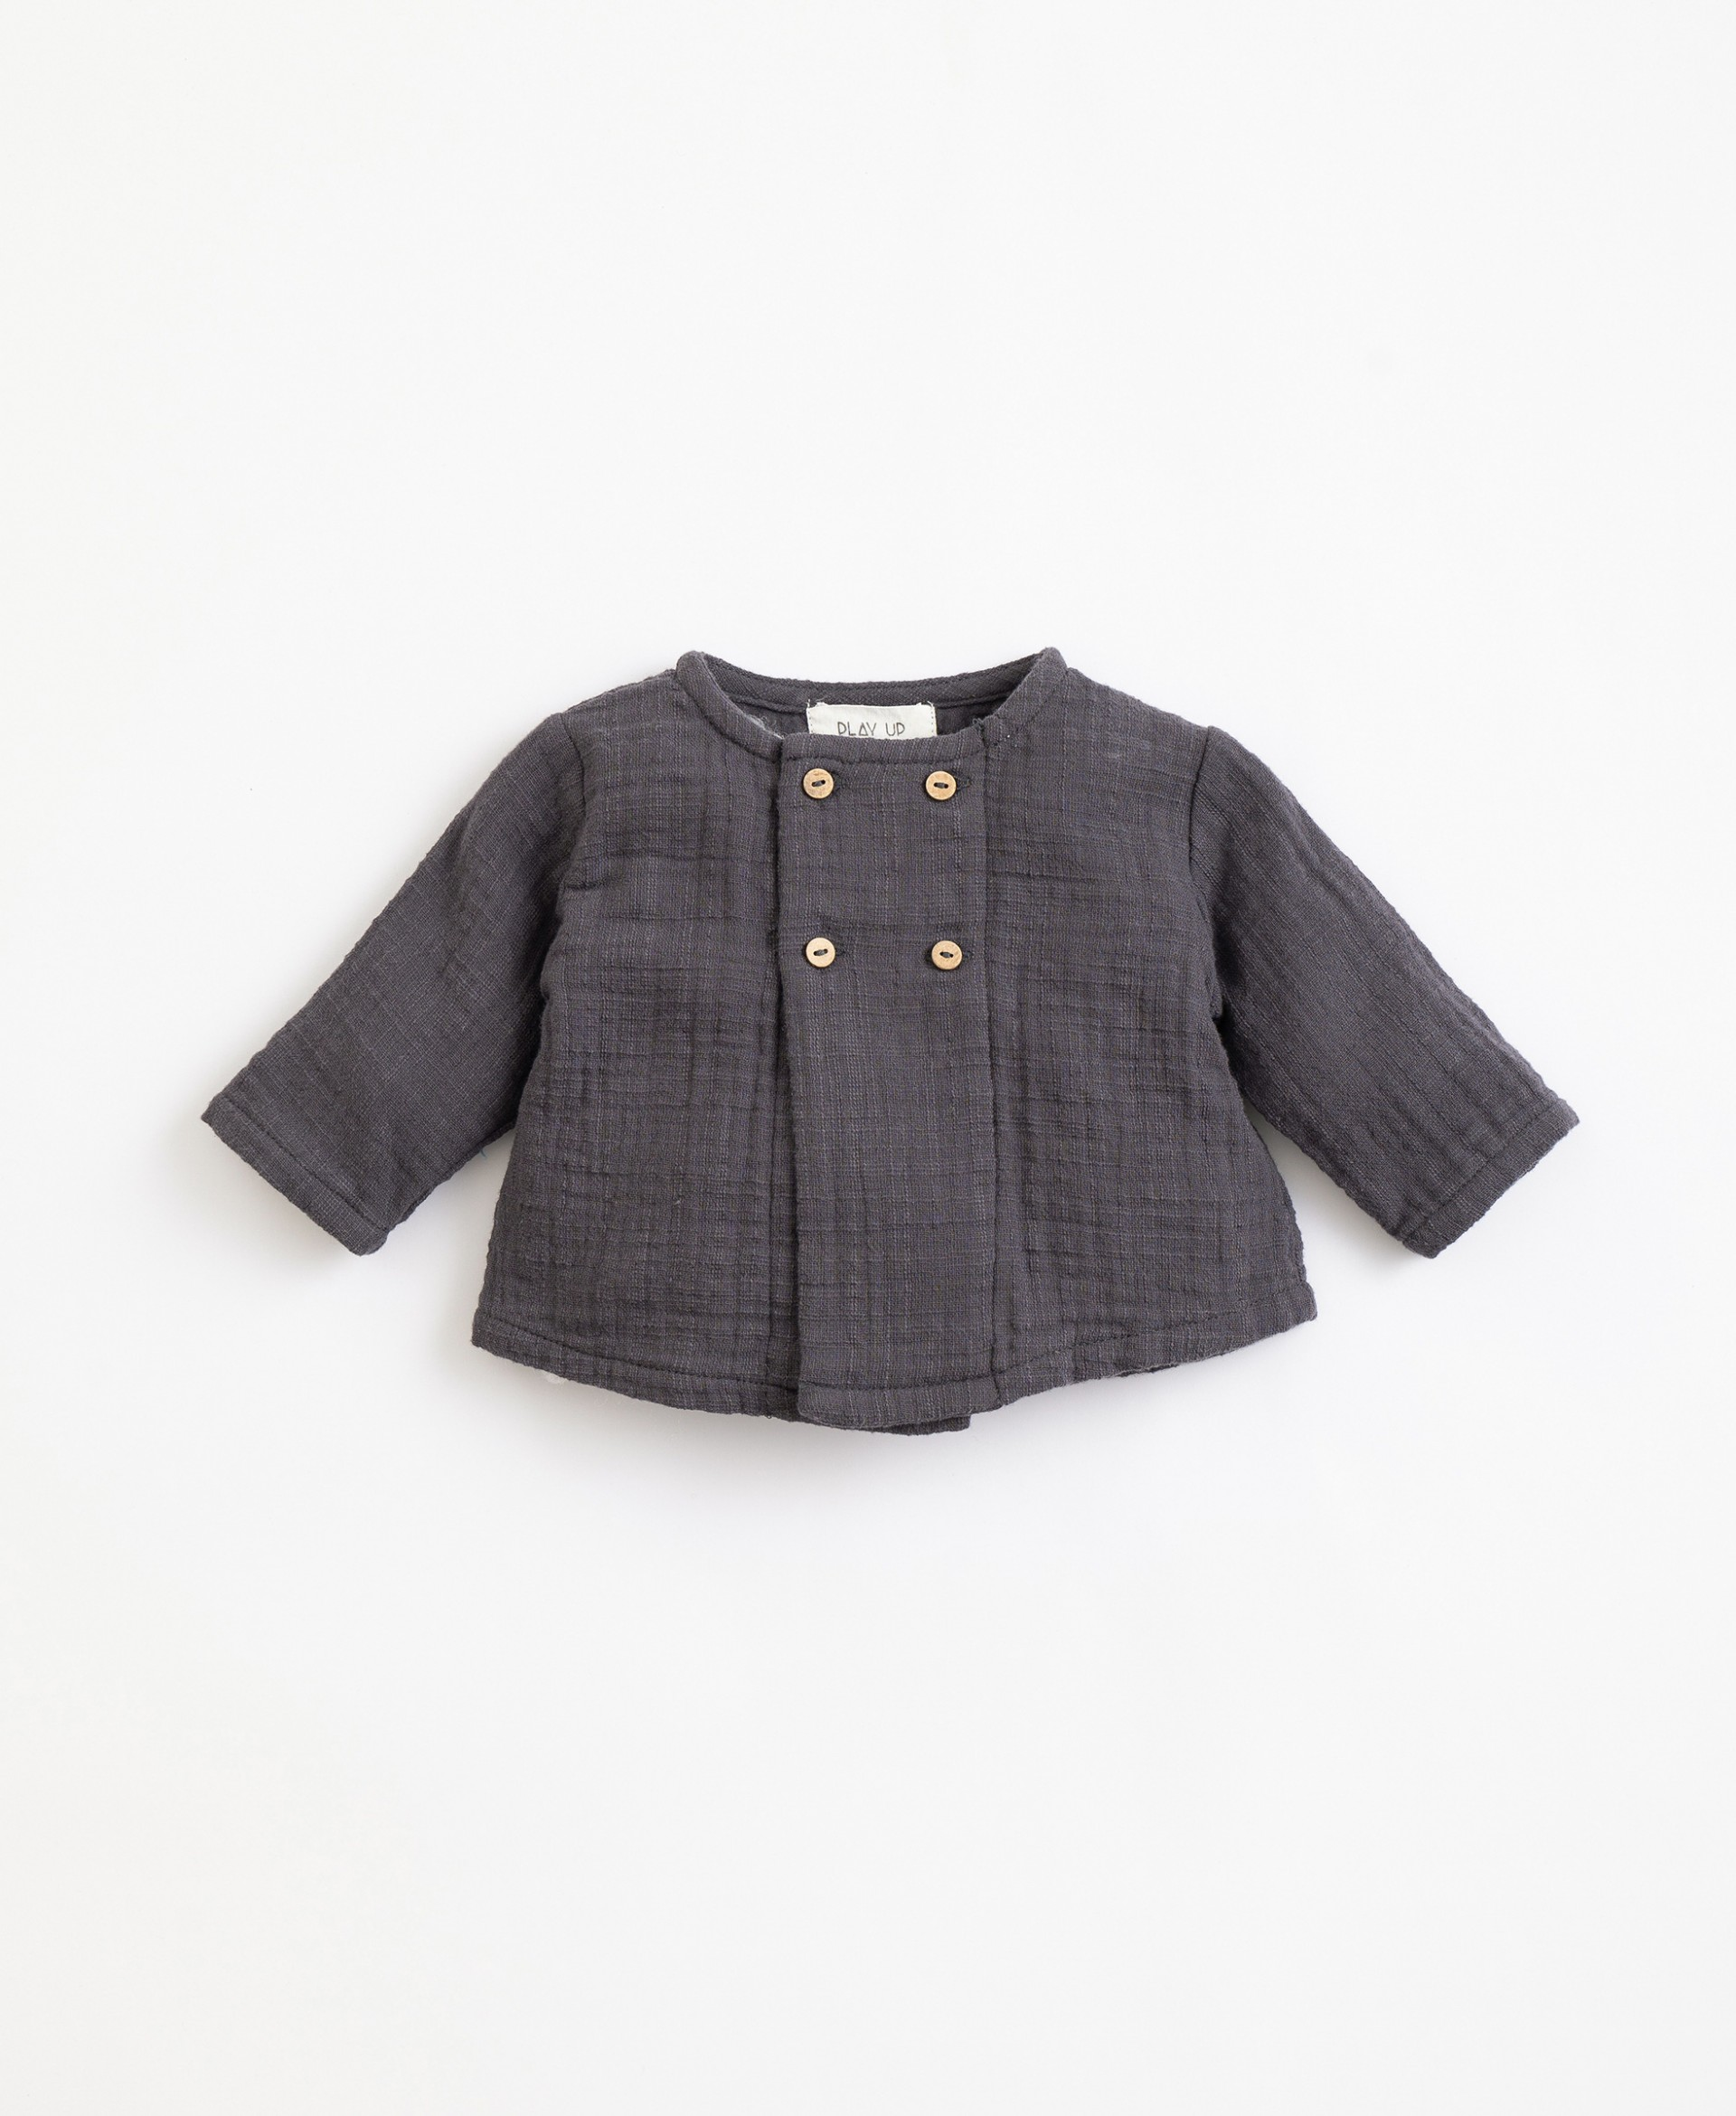 Cotton jersey with coconut buttons| Illustration